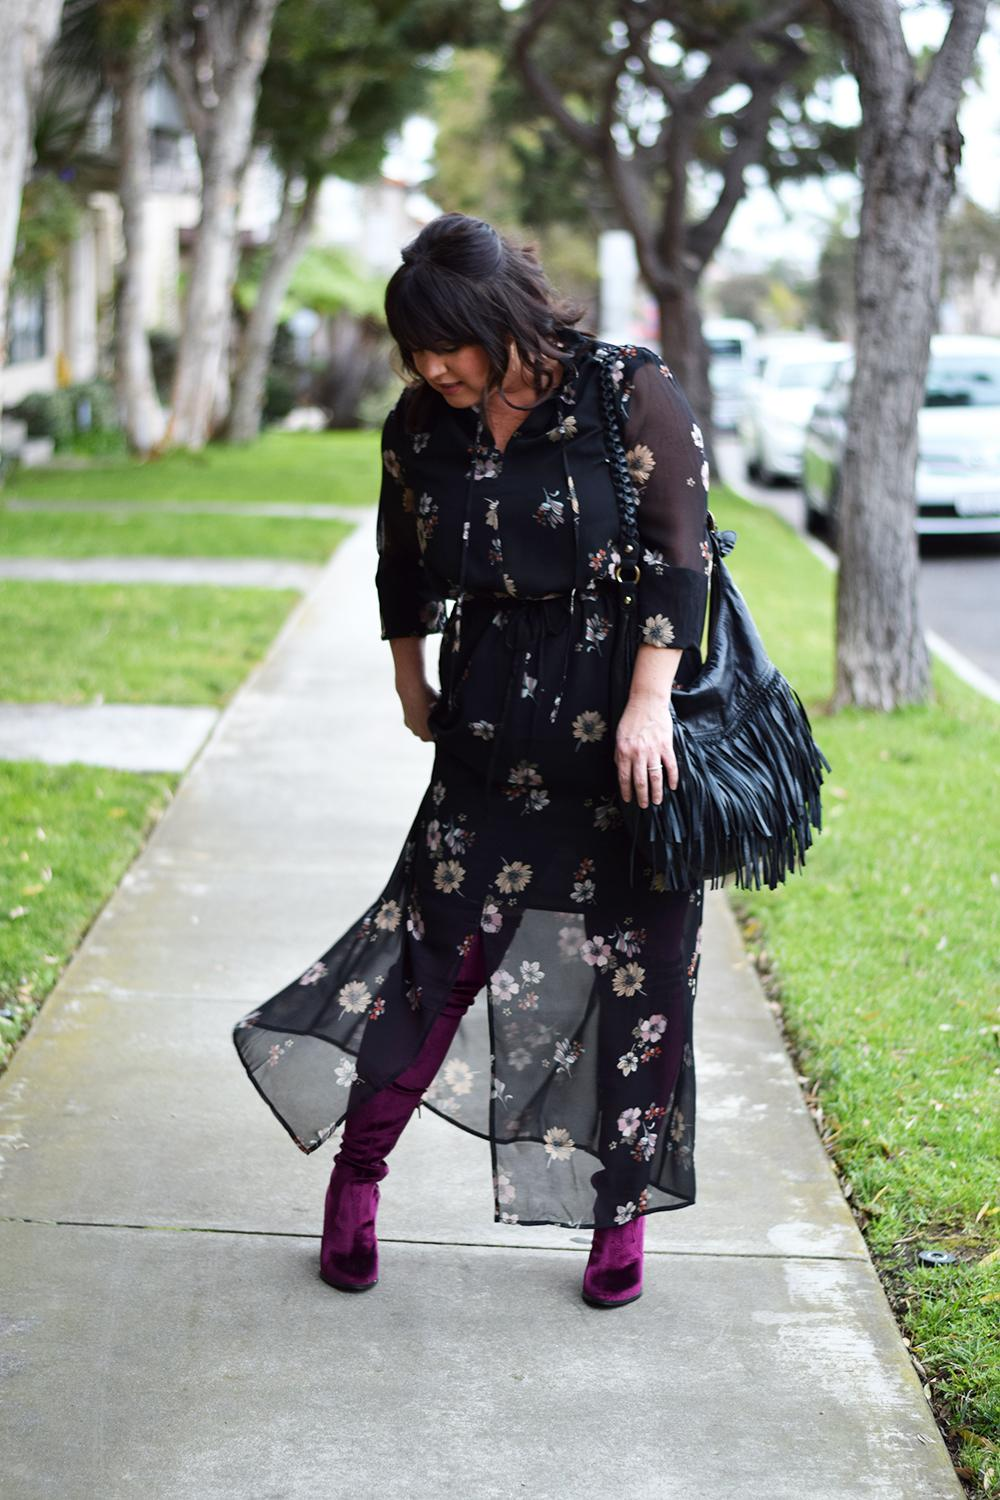 Asos-Velvet-Thigh-High-Boots-Outfit-Barefoot-in-LA-Fashion-Blog-Style-Ideas-0049 (2)